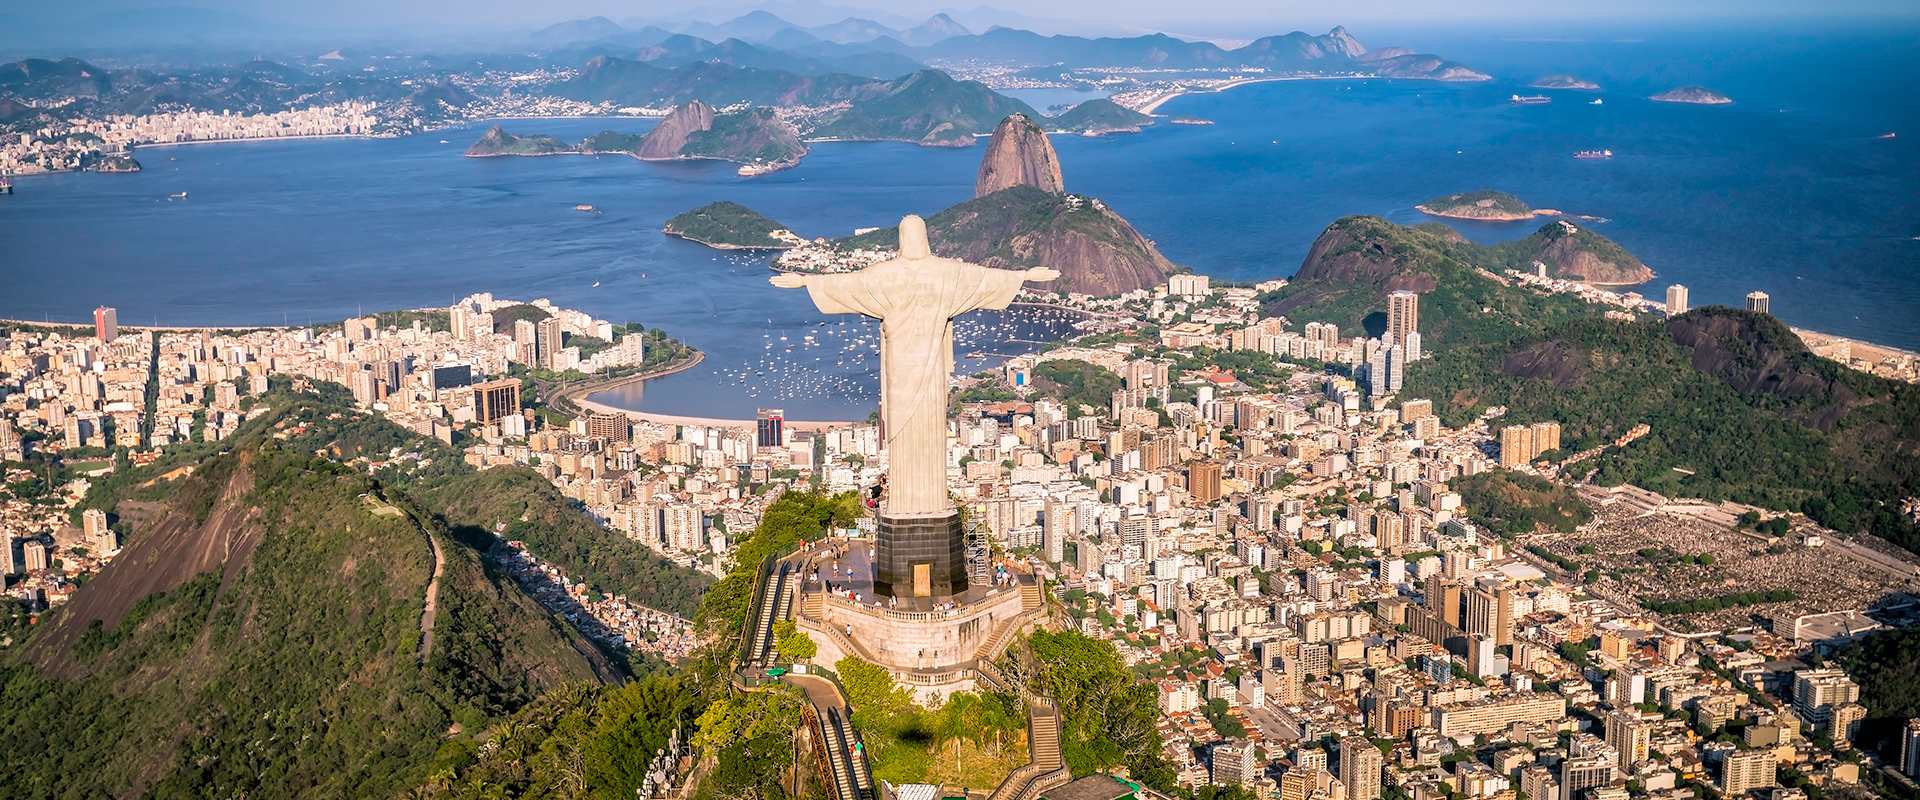 Christ the Redeemer Climate Change